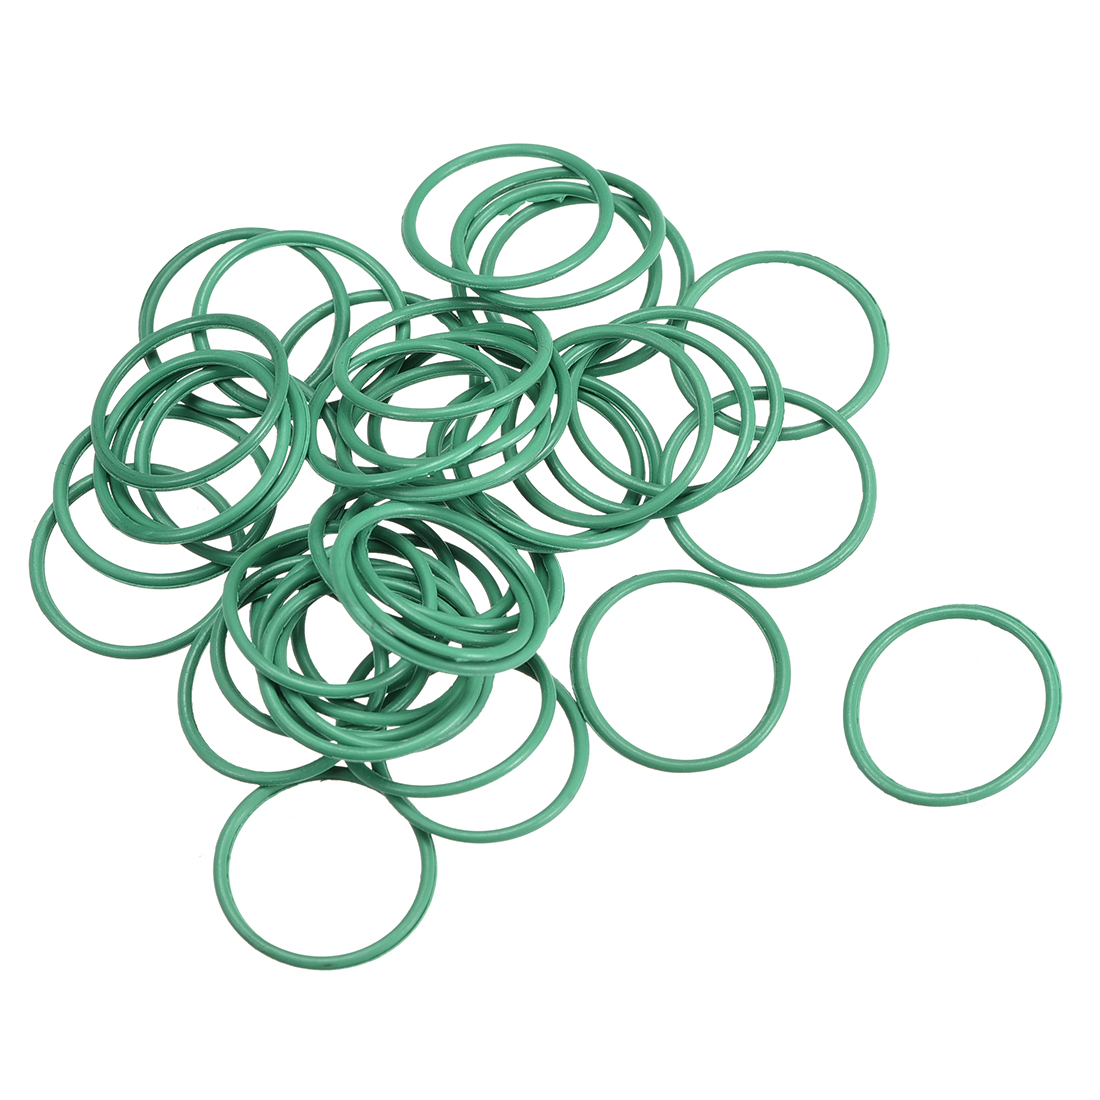 50Pcs 15mm x 1mm FKM Nitrile Rubber O-rings Heat Resistant Sealing Ring Grommets Green